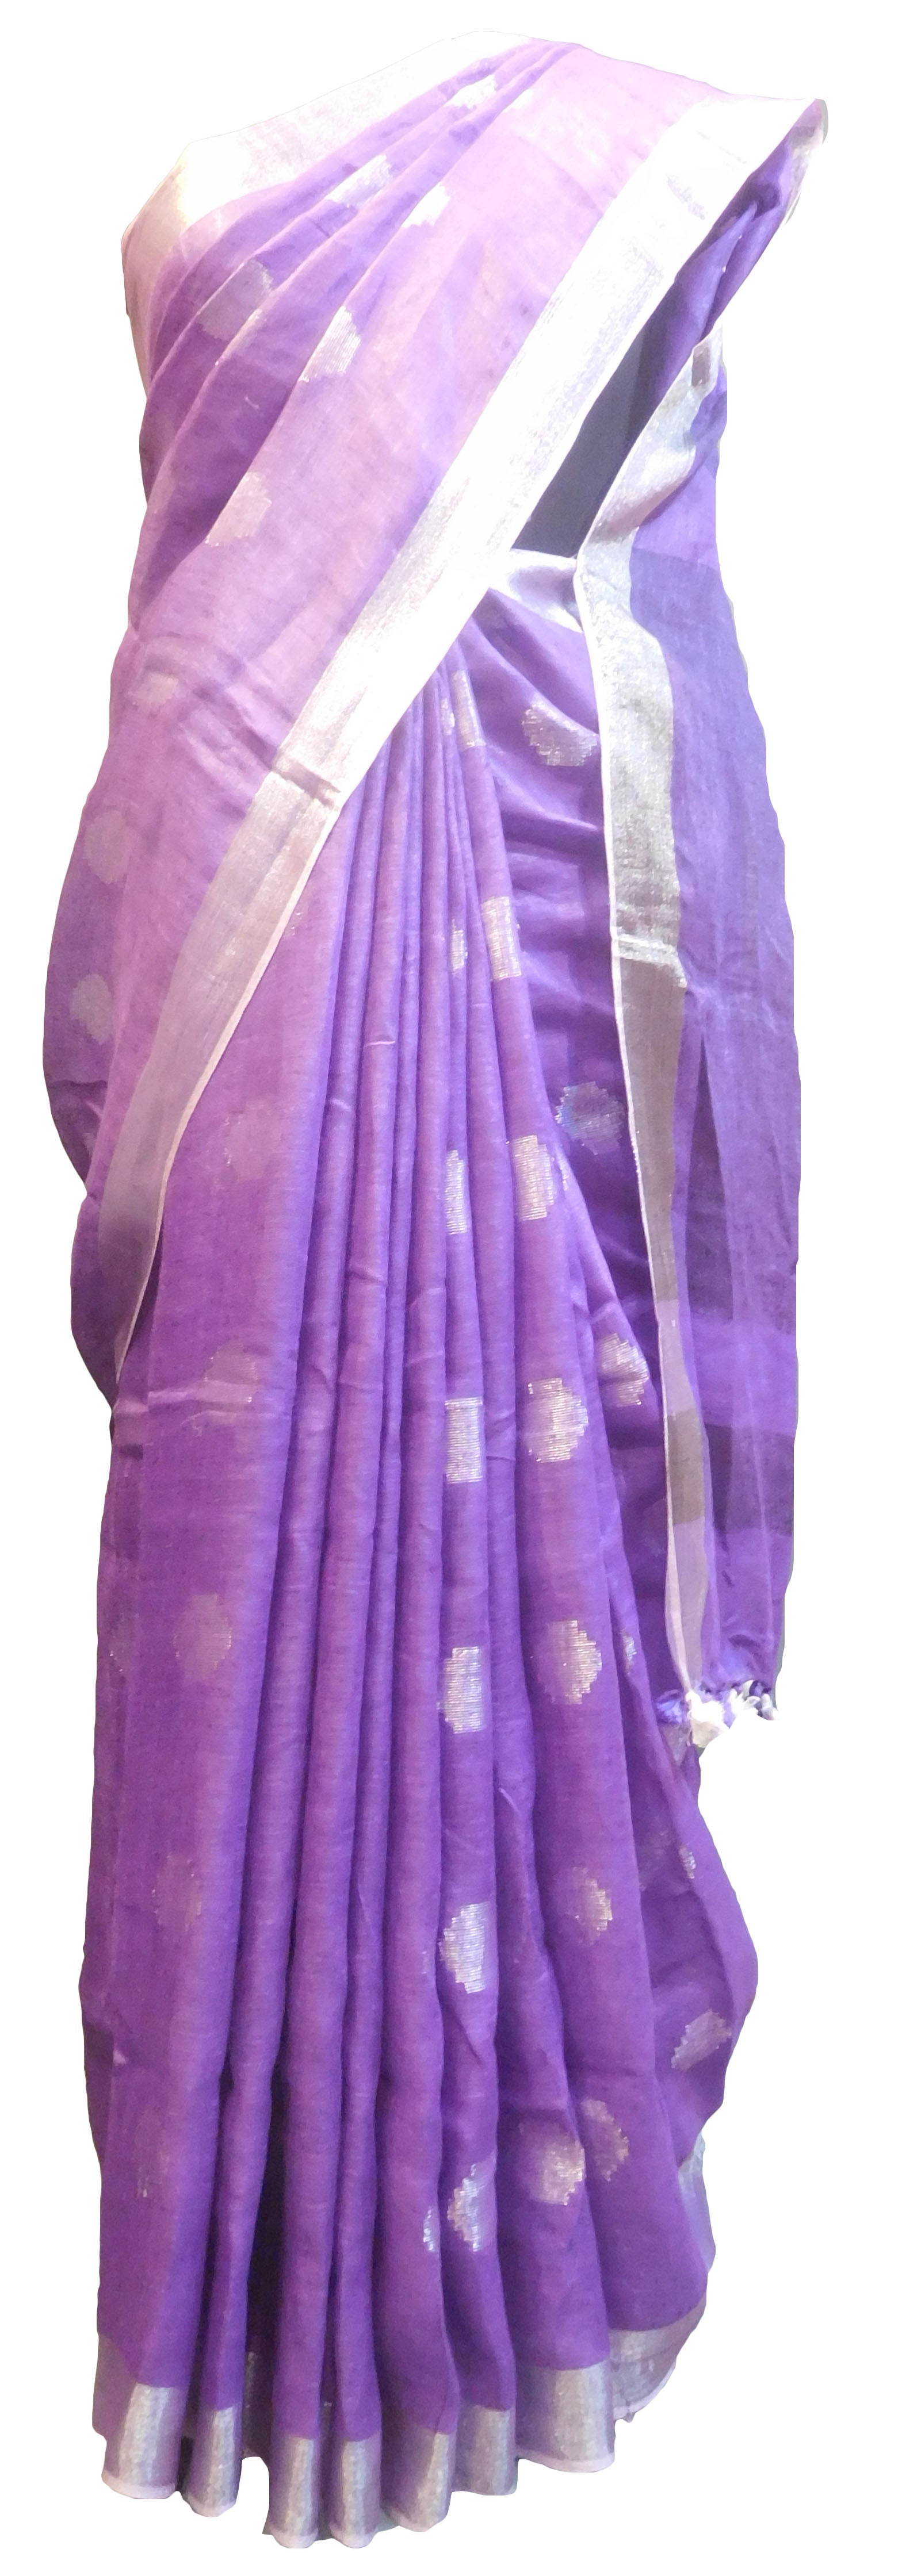 SMSAREE Purple Designer Wedding Partywear Handloom Linen Thread & Zari Hand Embroidery Work Bridal Saree Sari With Blouse Piece E852